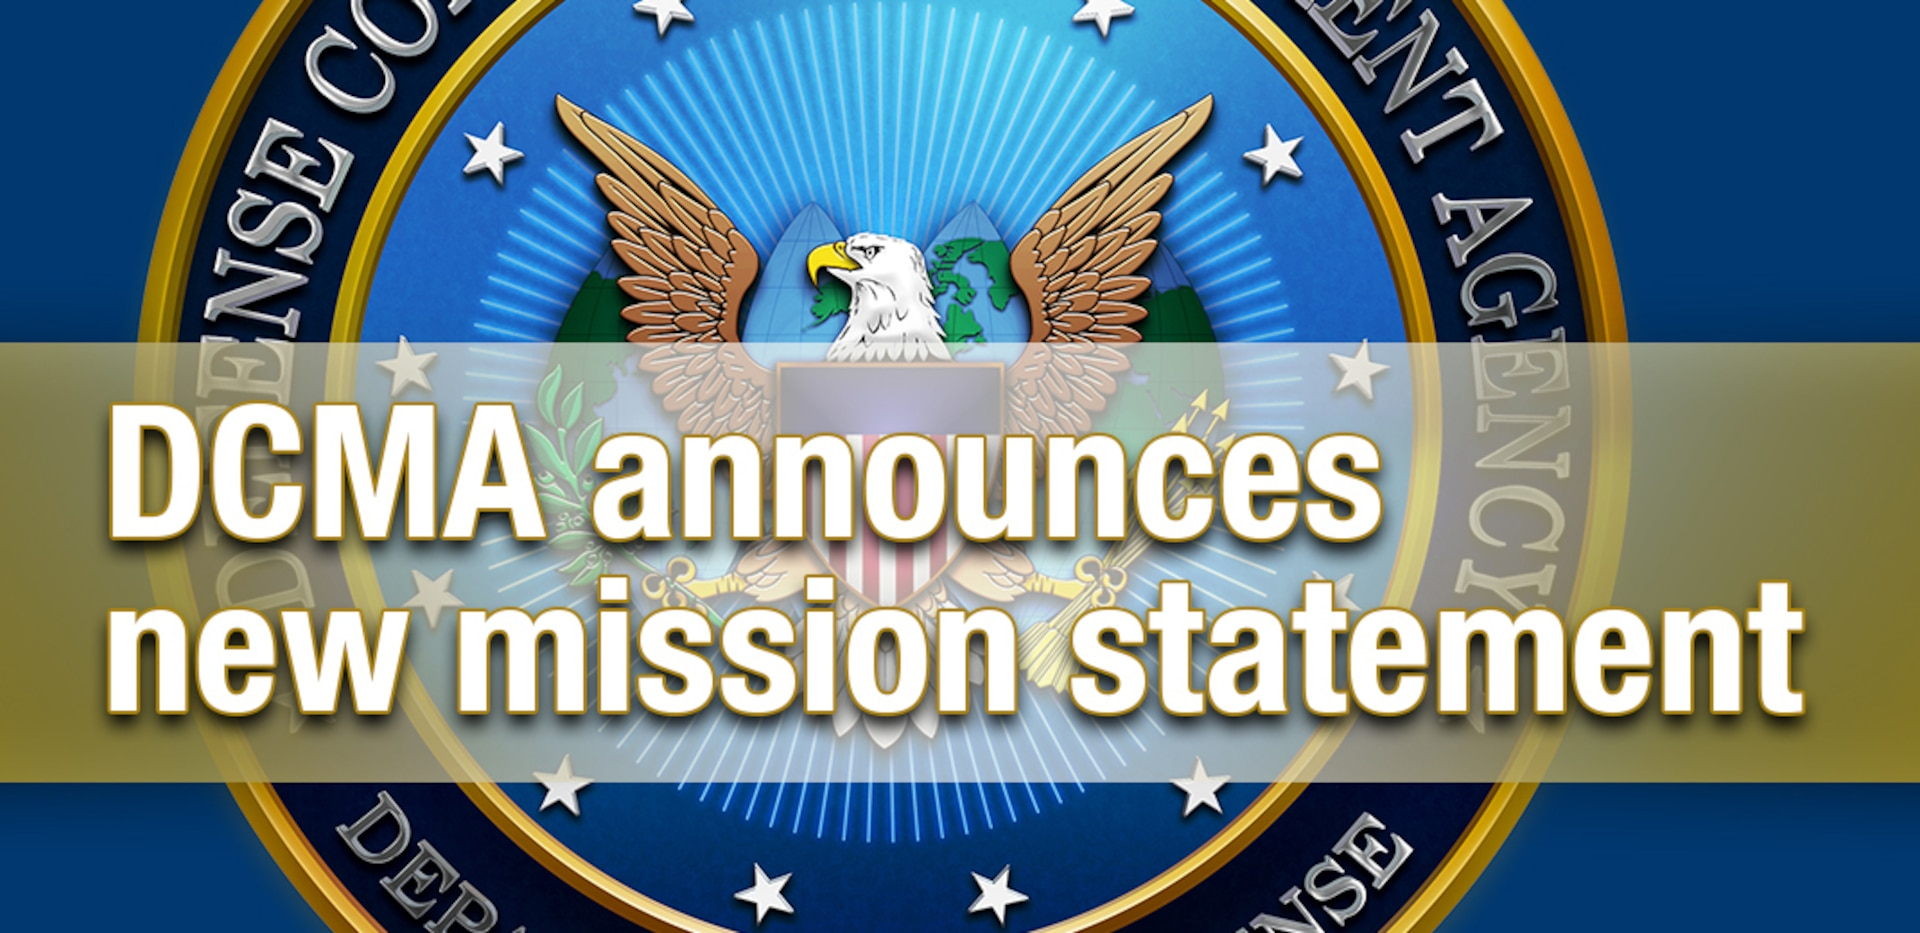 DCMA Director Air Force Lt. Gen. Wendy Masiello announced a new mission statement for the agency.